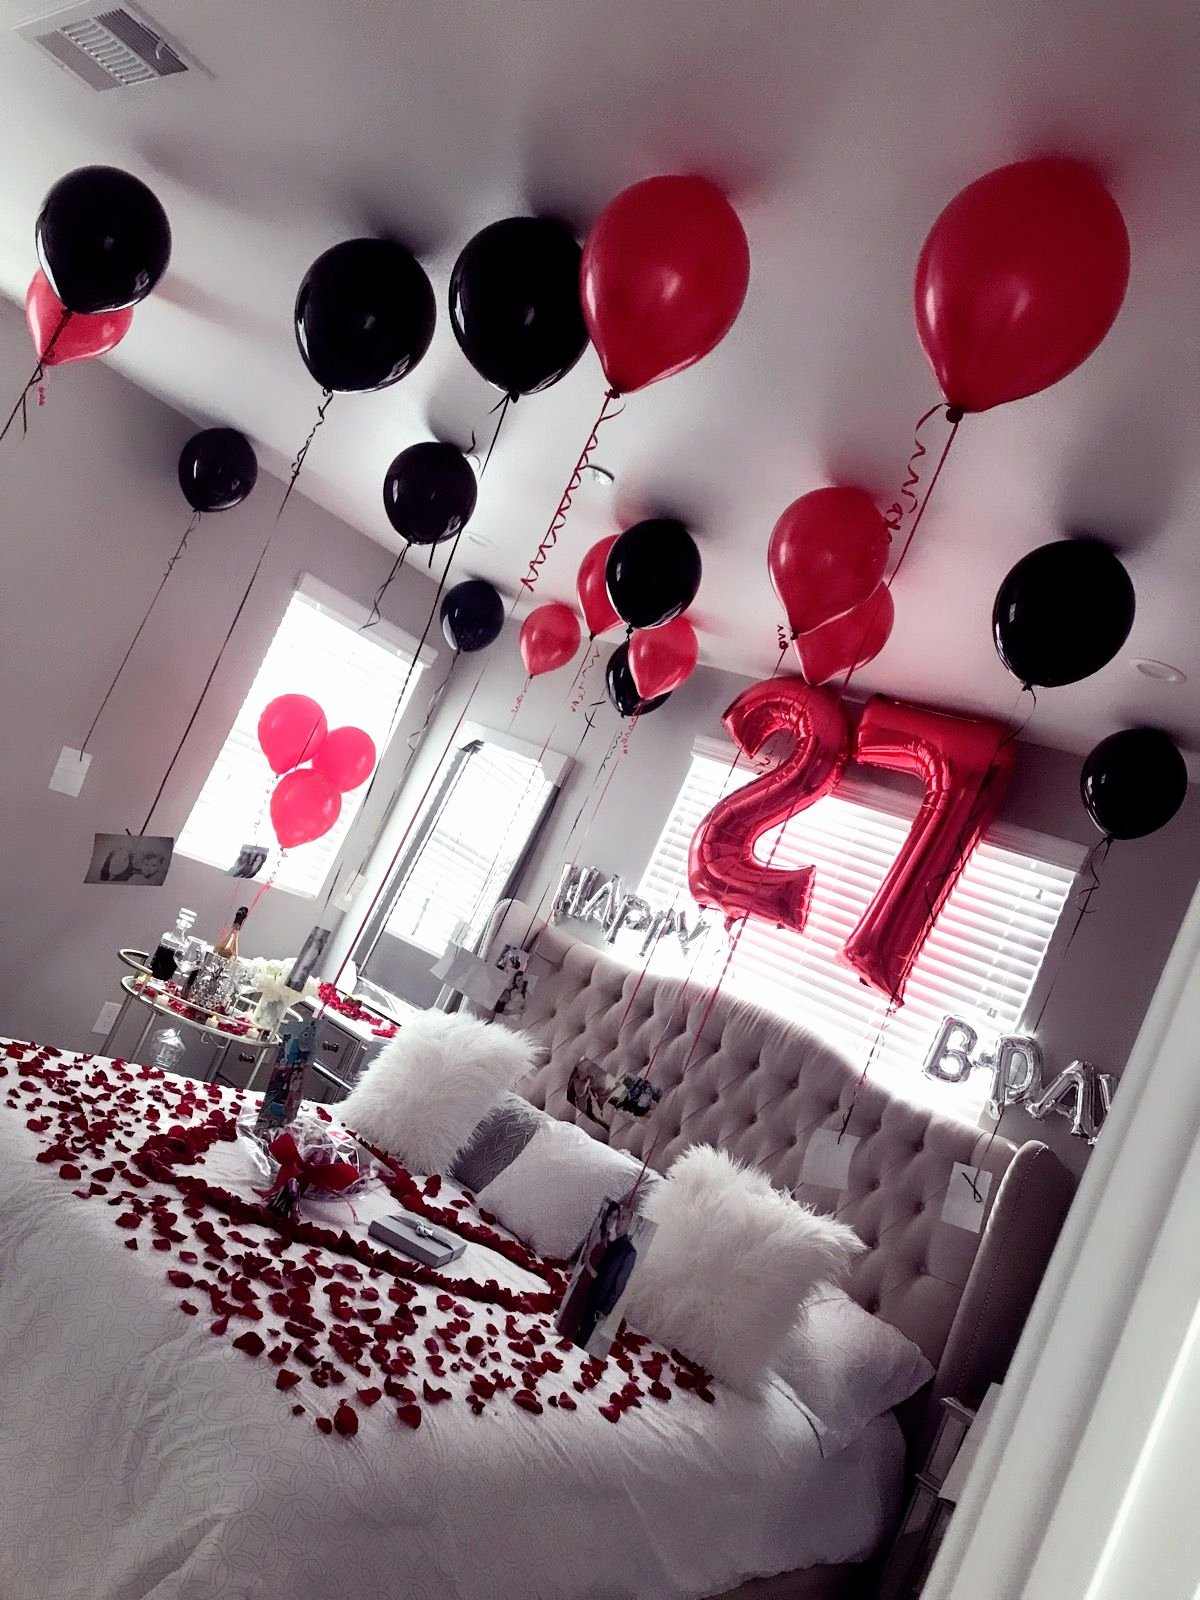 Birthday Decoration Ideas for Gf Elegant Birthday Surprise for Wife Husband